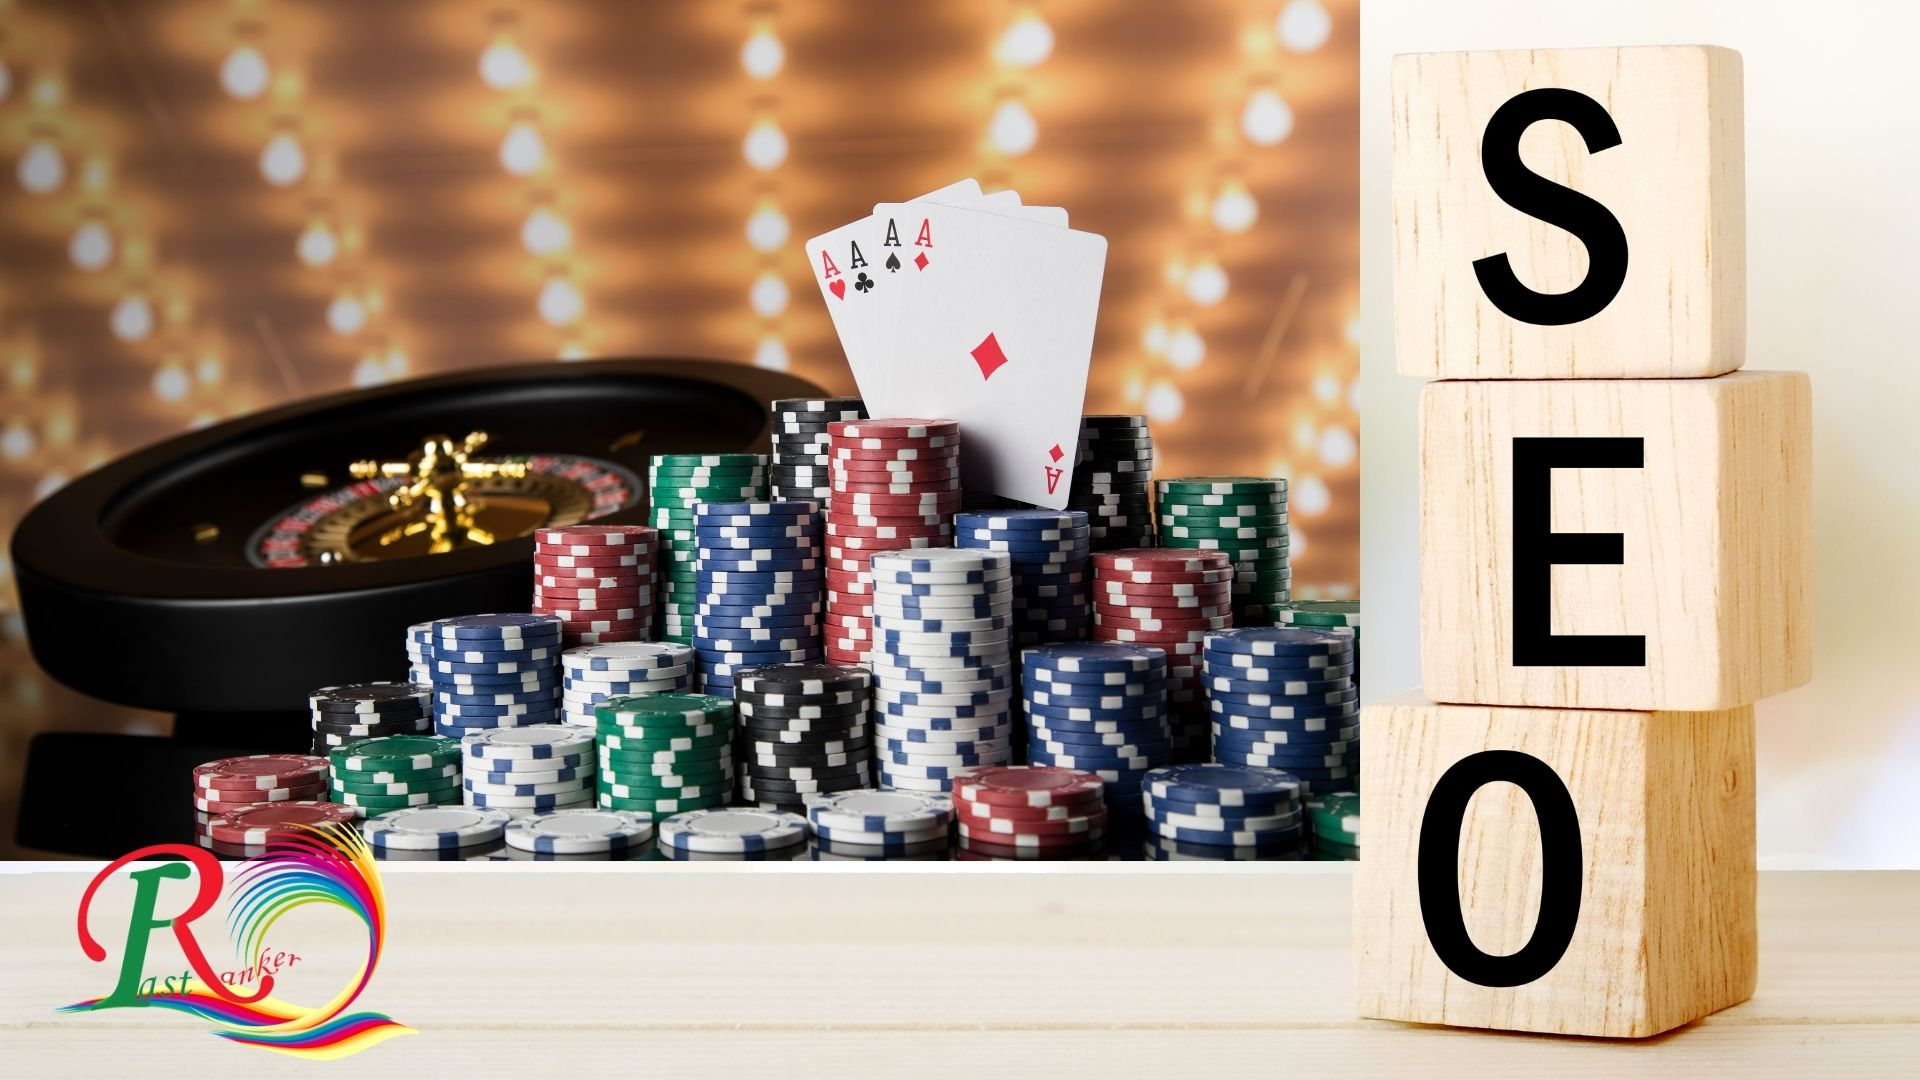 5,555+ backlinks Pack Google 1st Page Casino Poker sports Betting Gambling related site